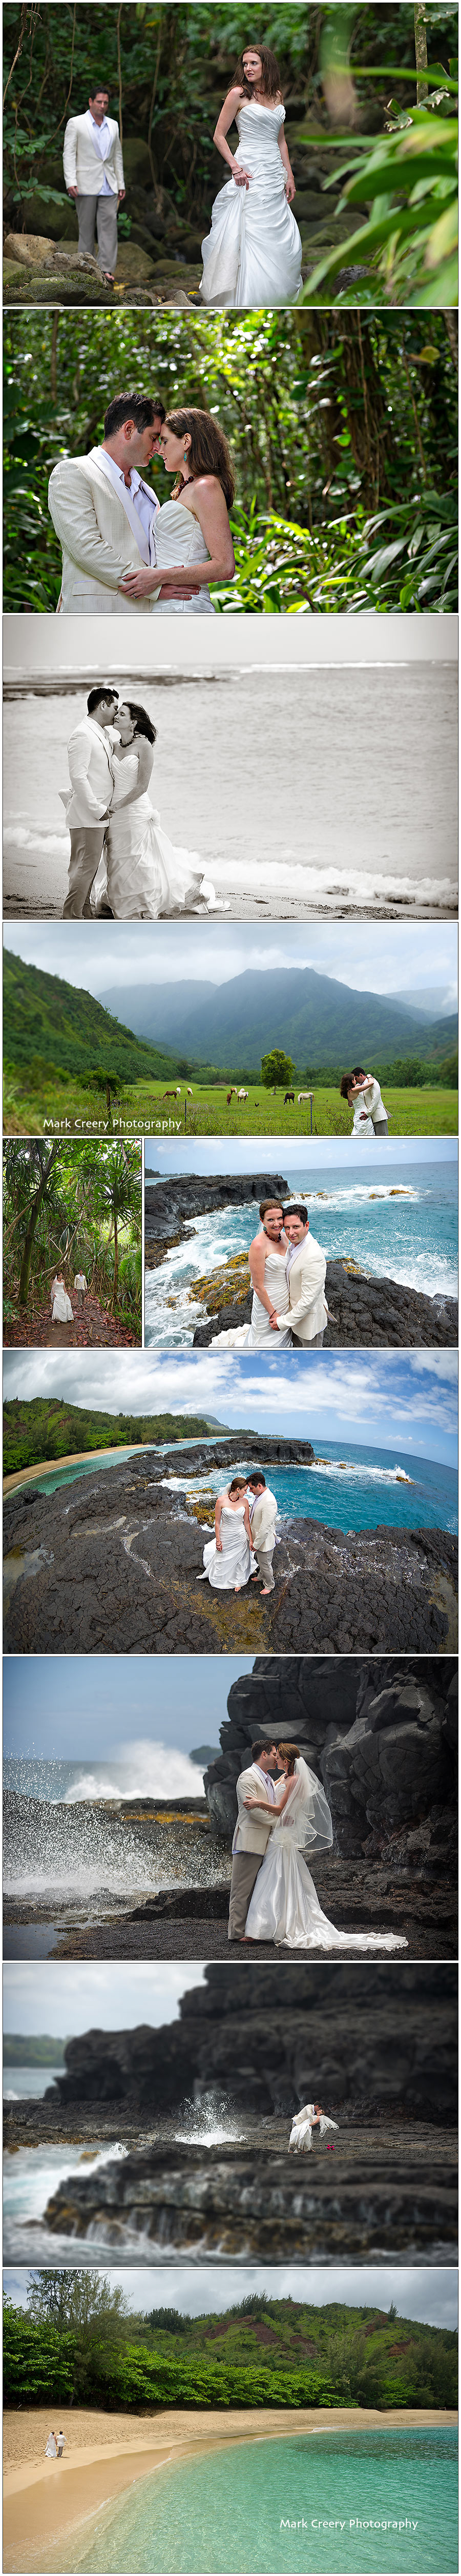 Kauai Wedding Photography, North Shore Kauai